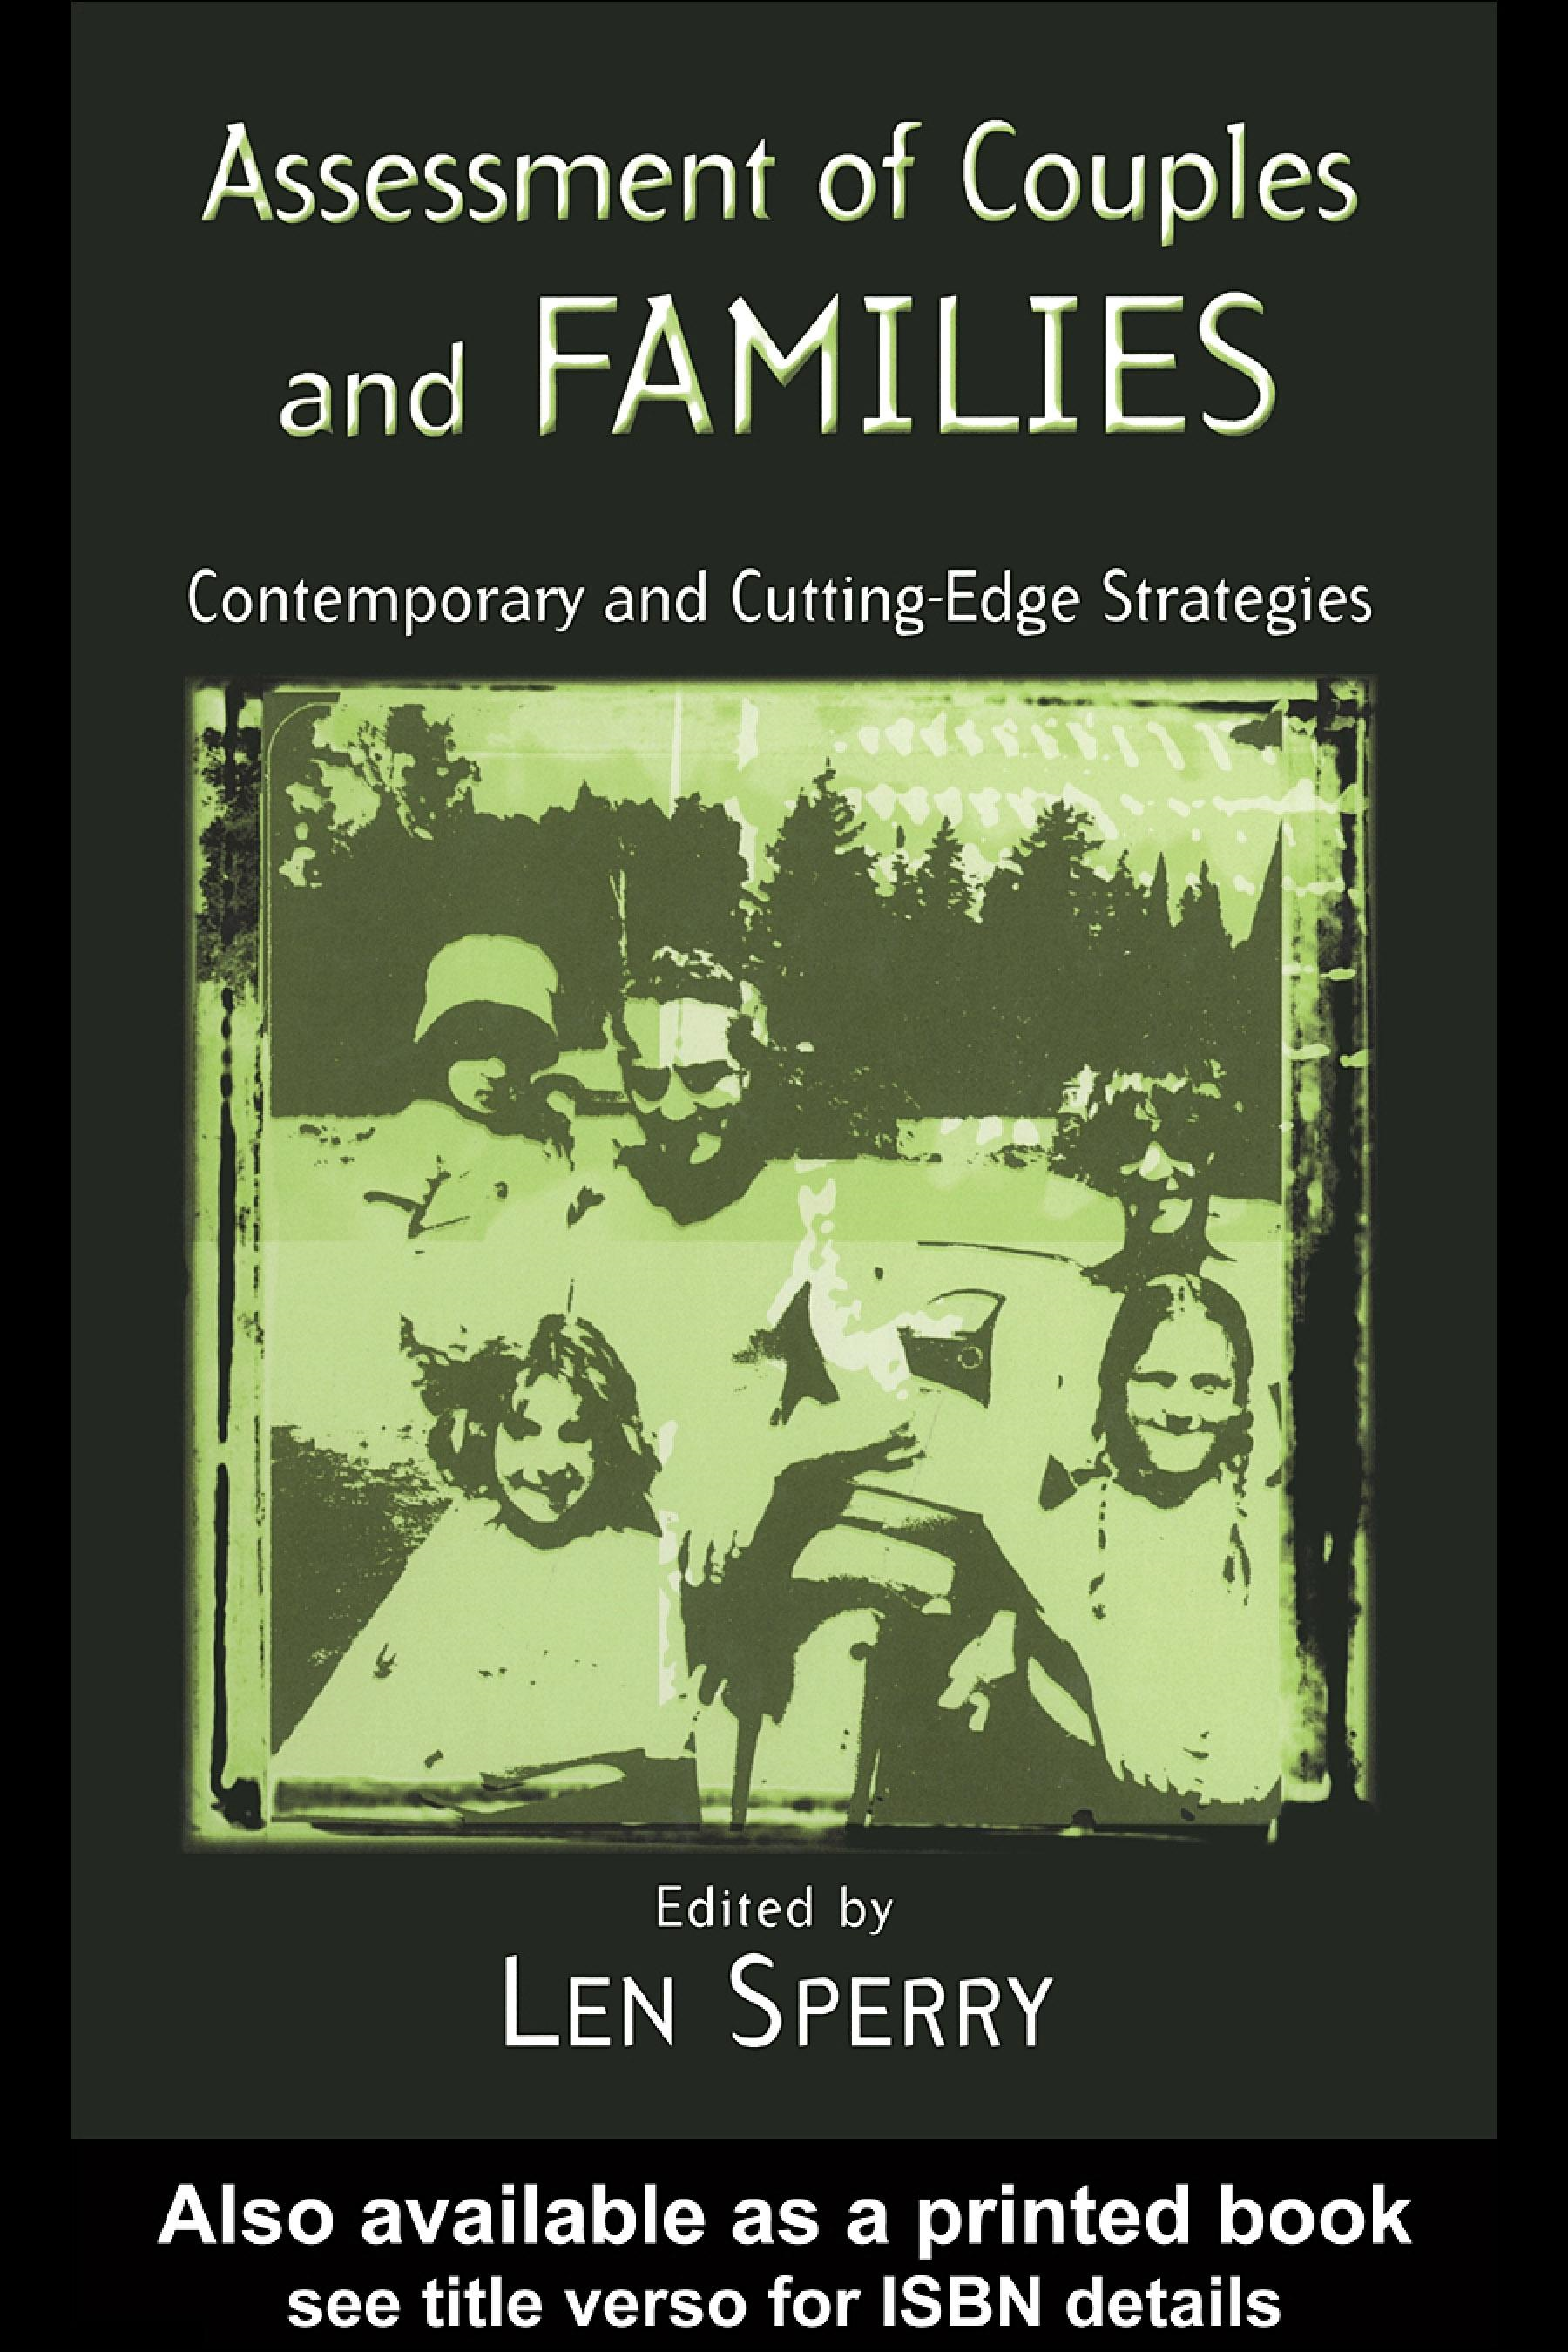 Assessment of Couples and Families: Contemporary and Cutting Edge Strategies